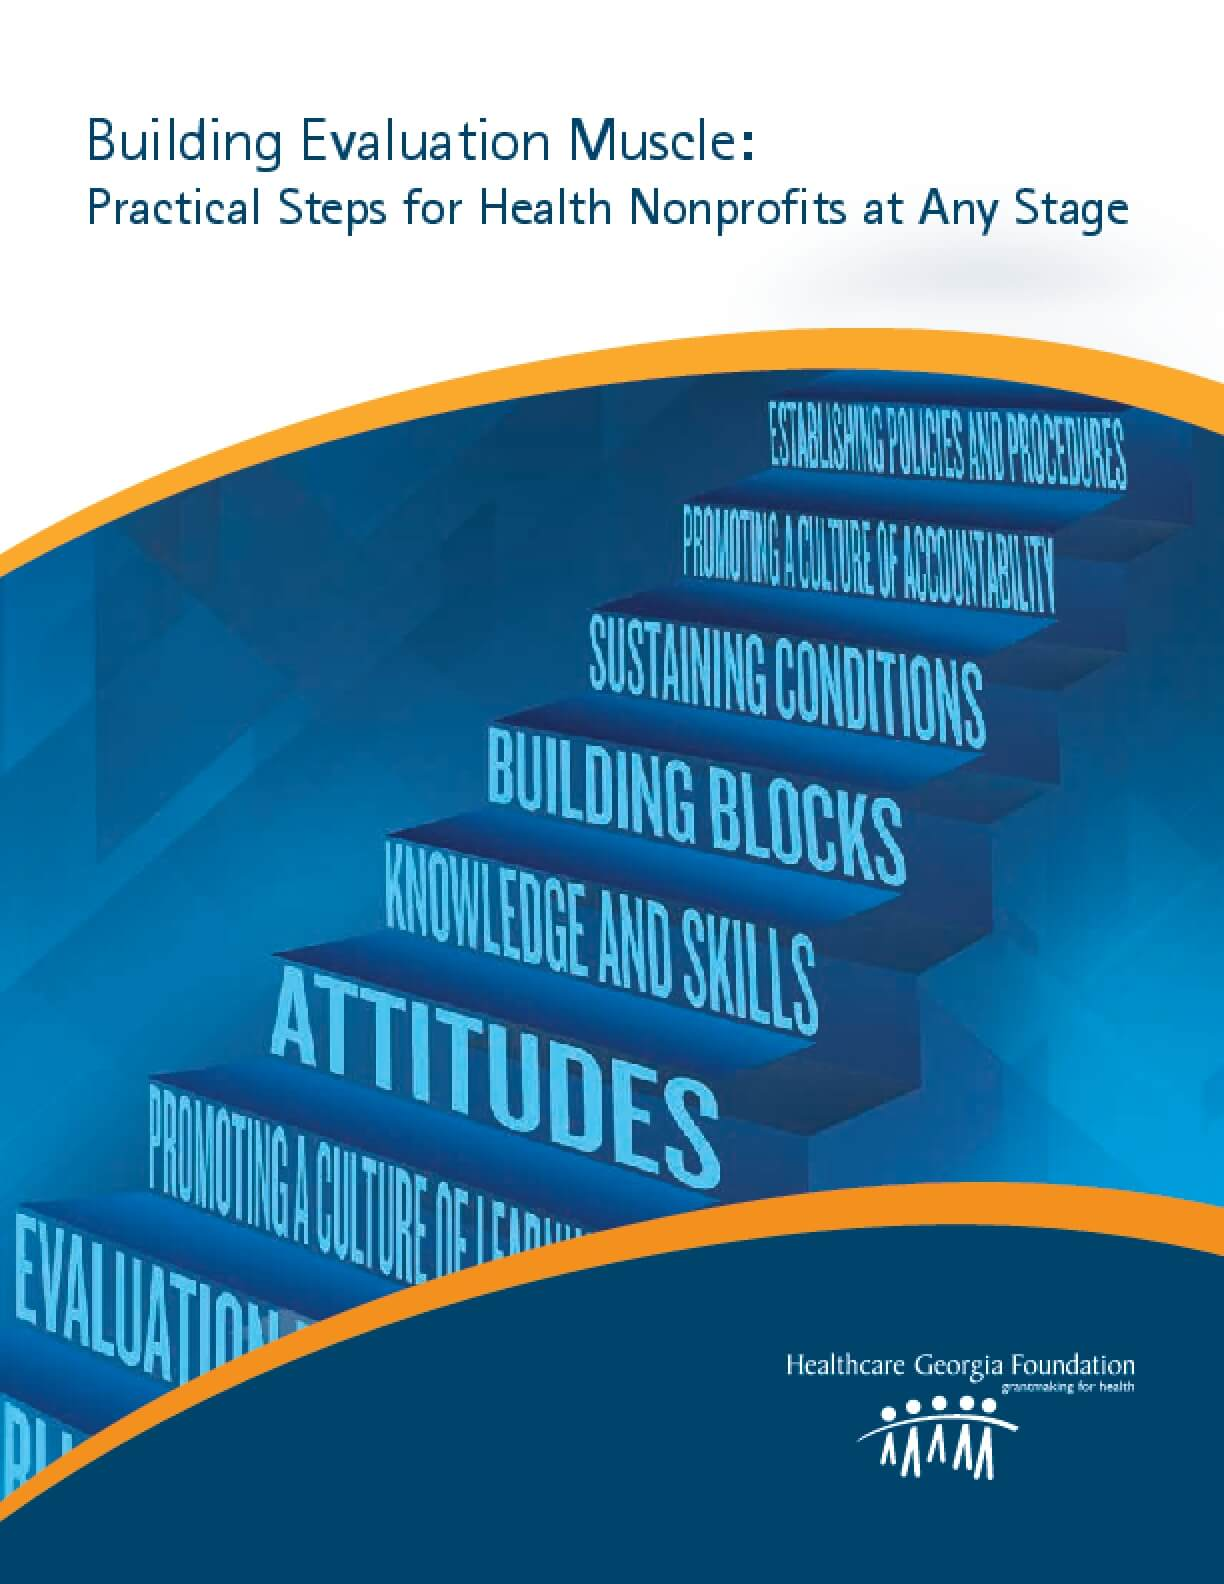 Building Evaluation Muscle: Practical Steps for Health Nonprofits at Any Stage